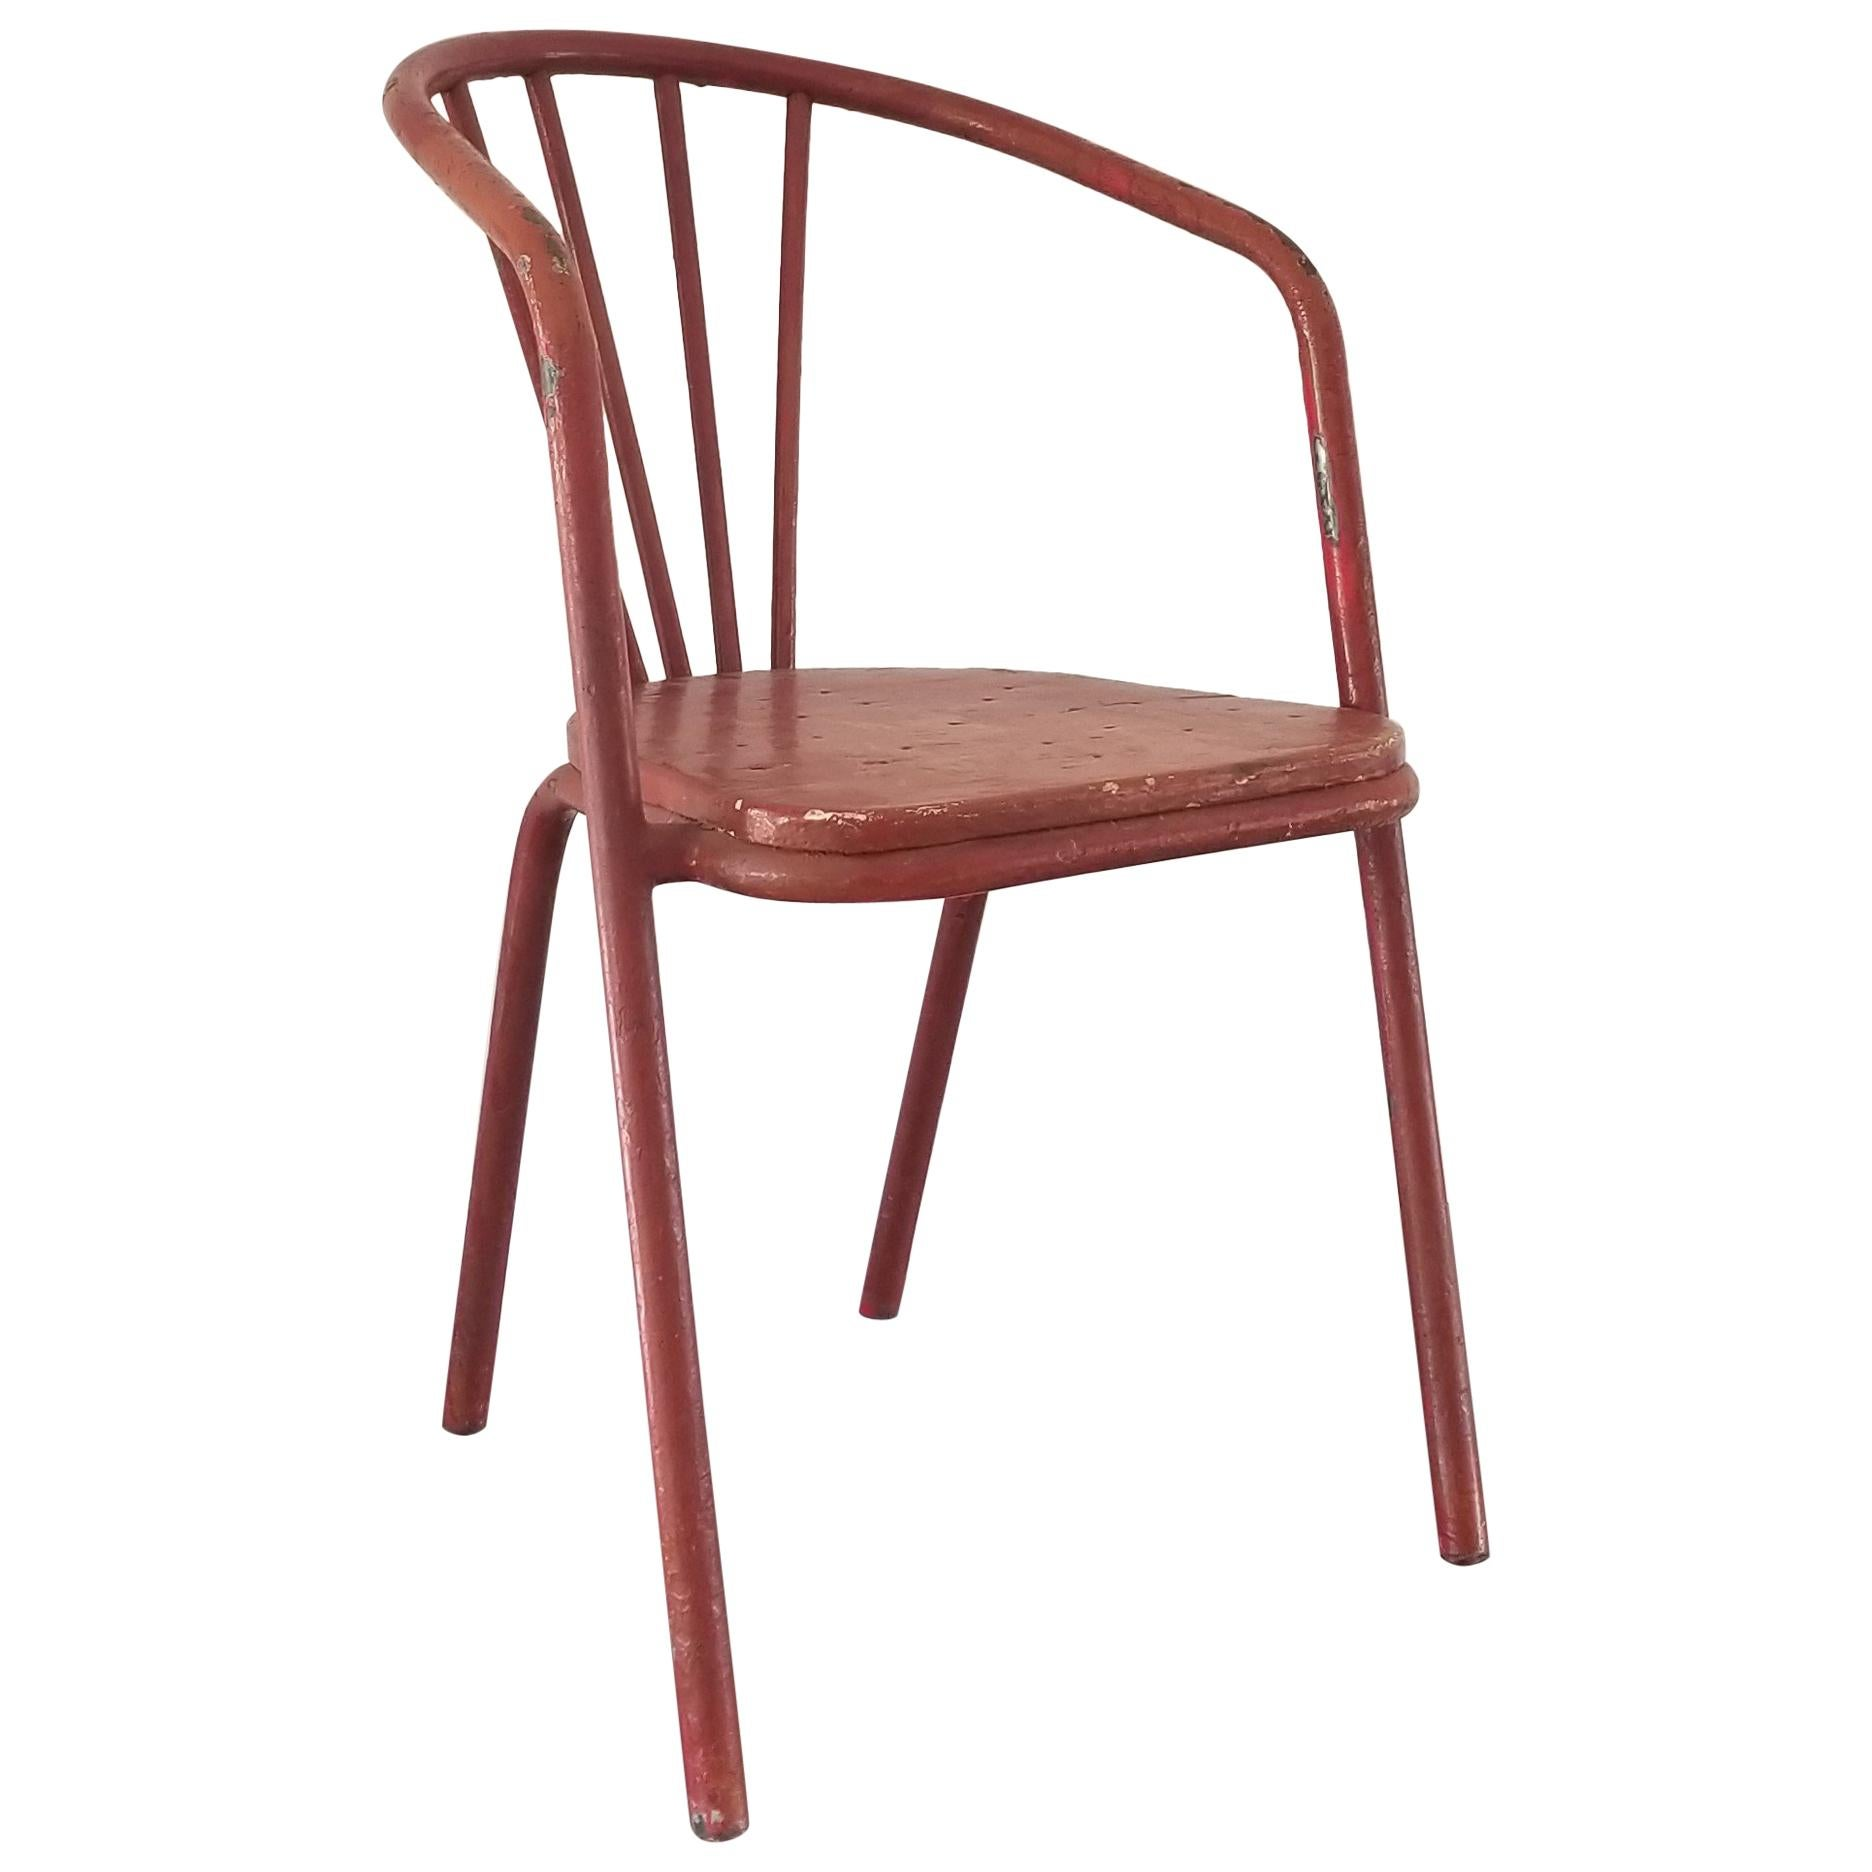 Modernist Chair by Robert Mallet Stevens France 1930s